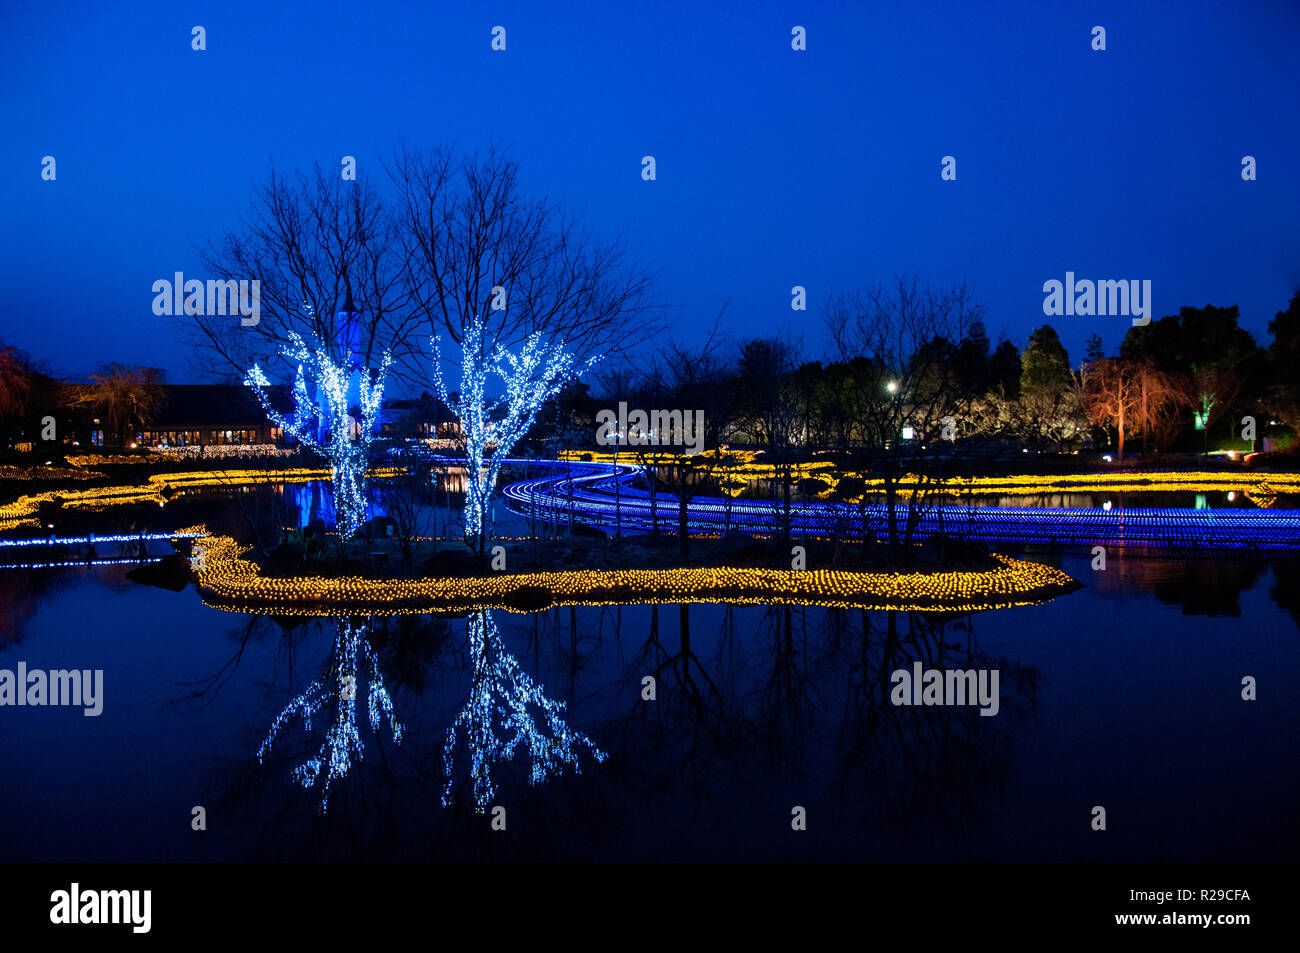 Light decoration reflecting on the water surface at Nabana no Sato, Mie, Japan - Stock Image